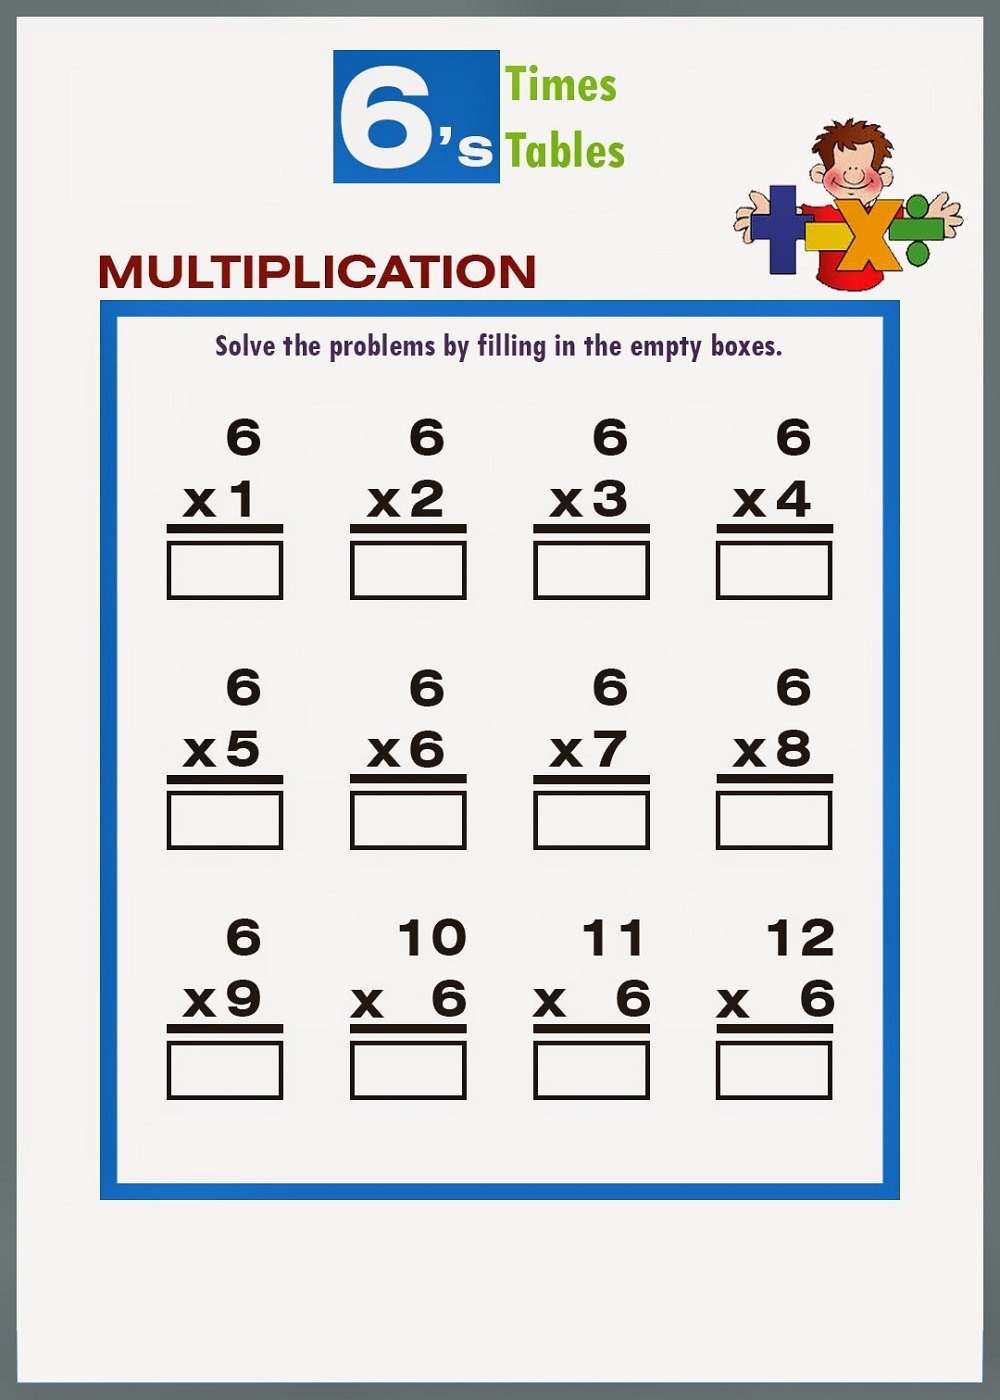 6 times tables worksheets printable